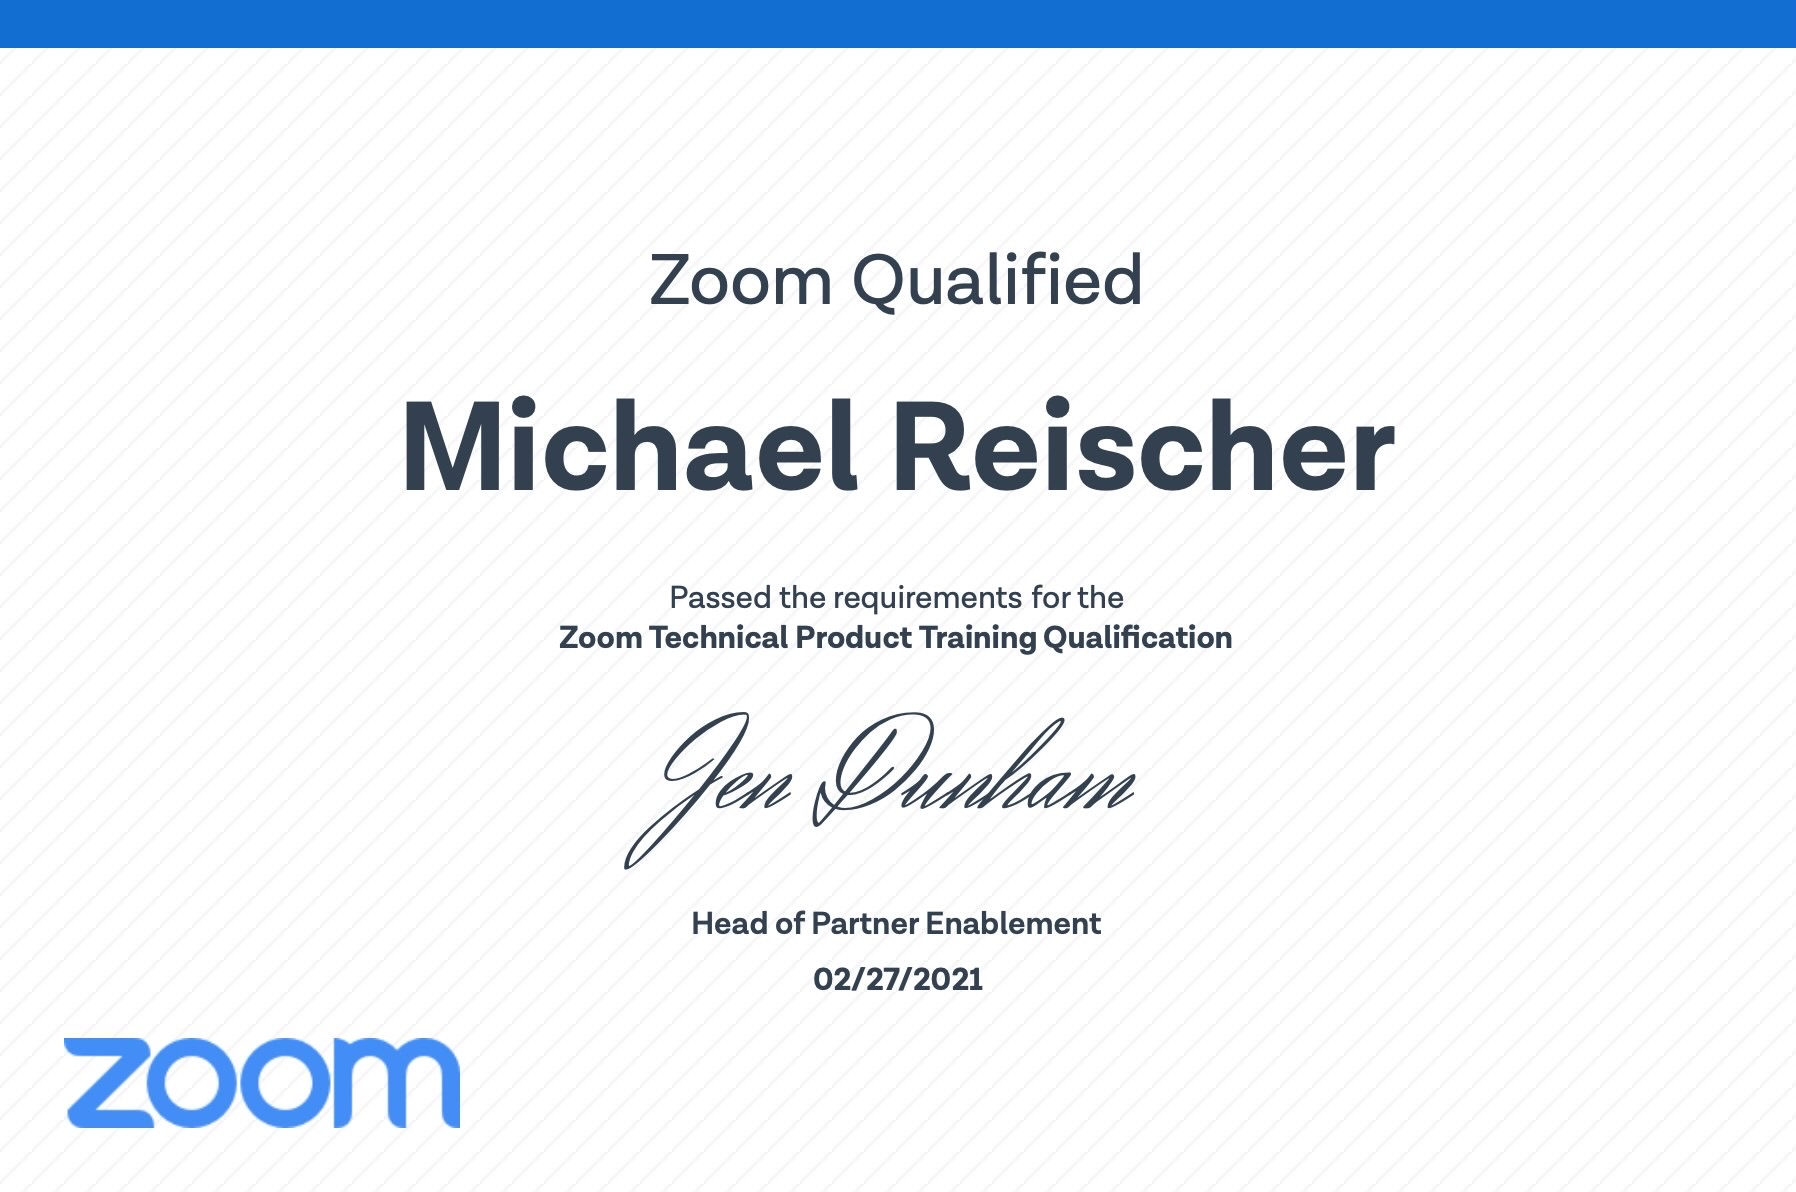 02_MR_Zoom_Technical_Product_Training_Qualification